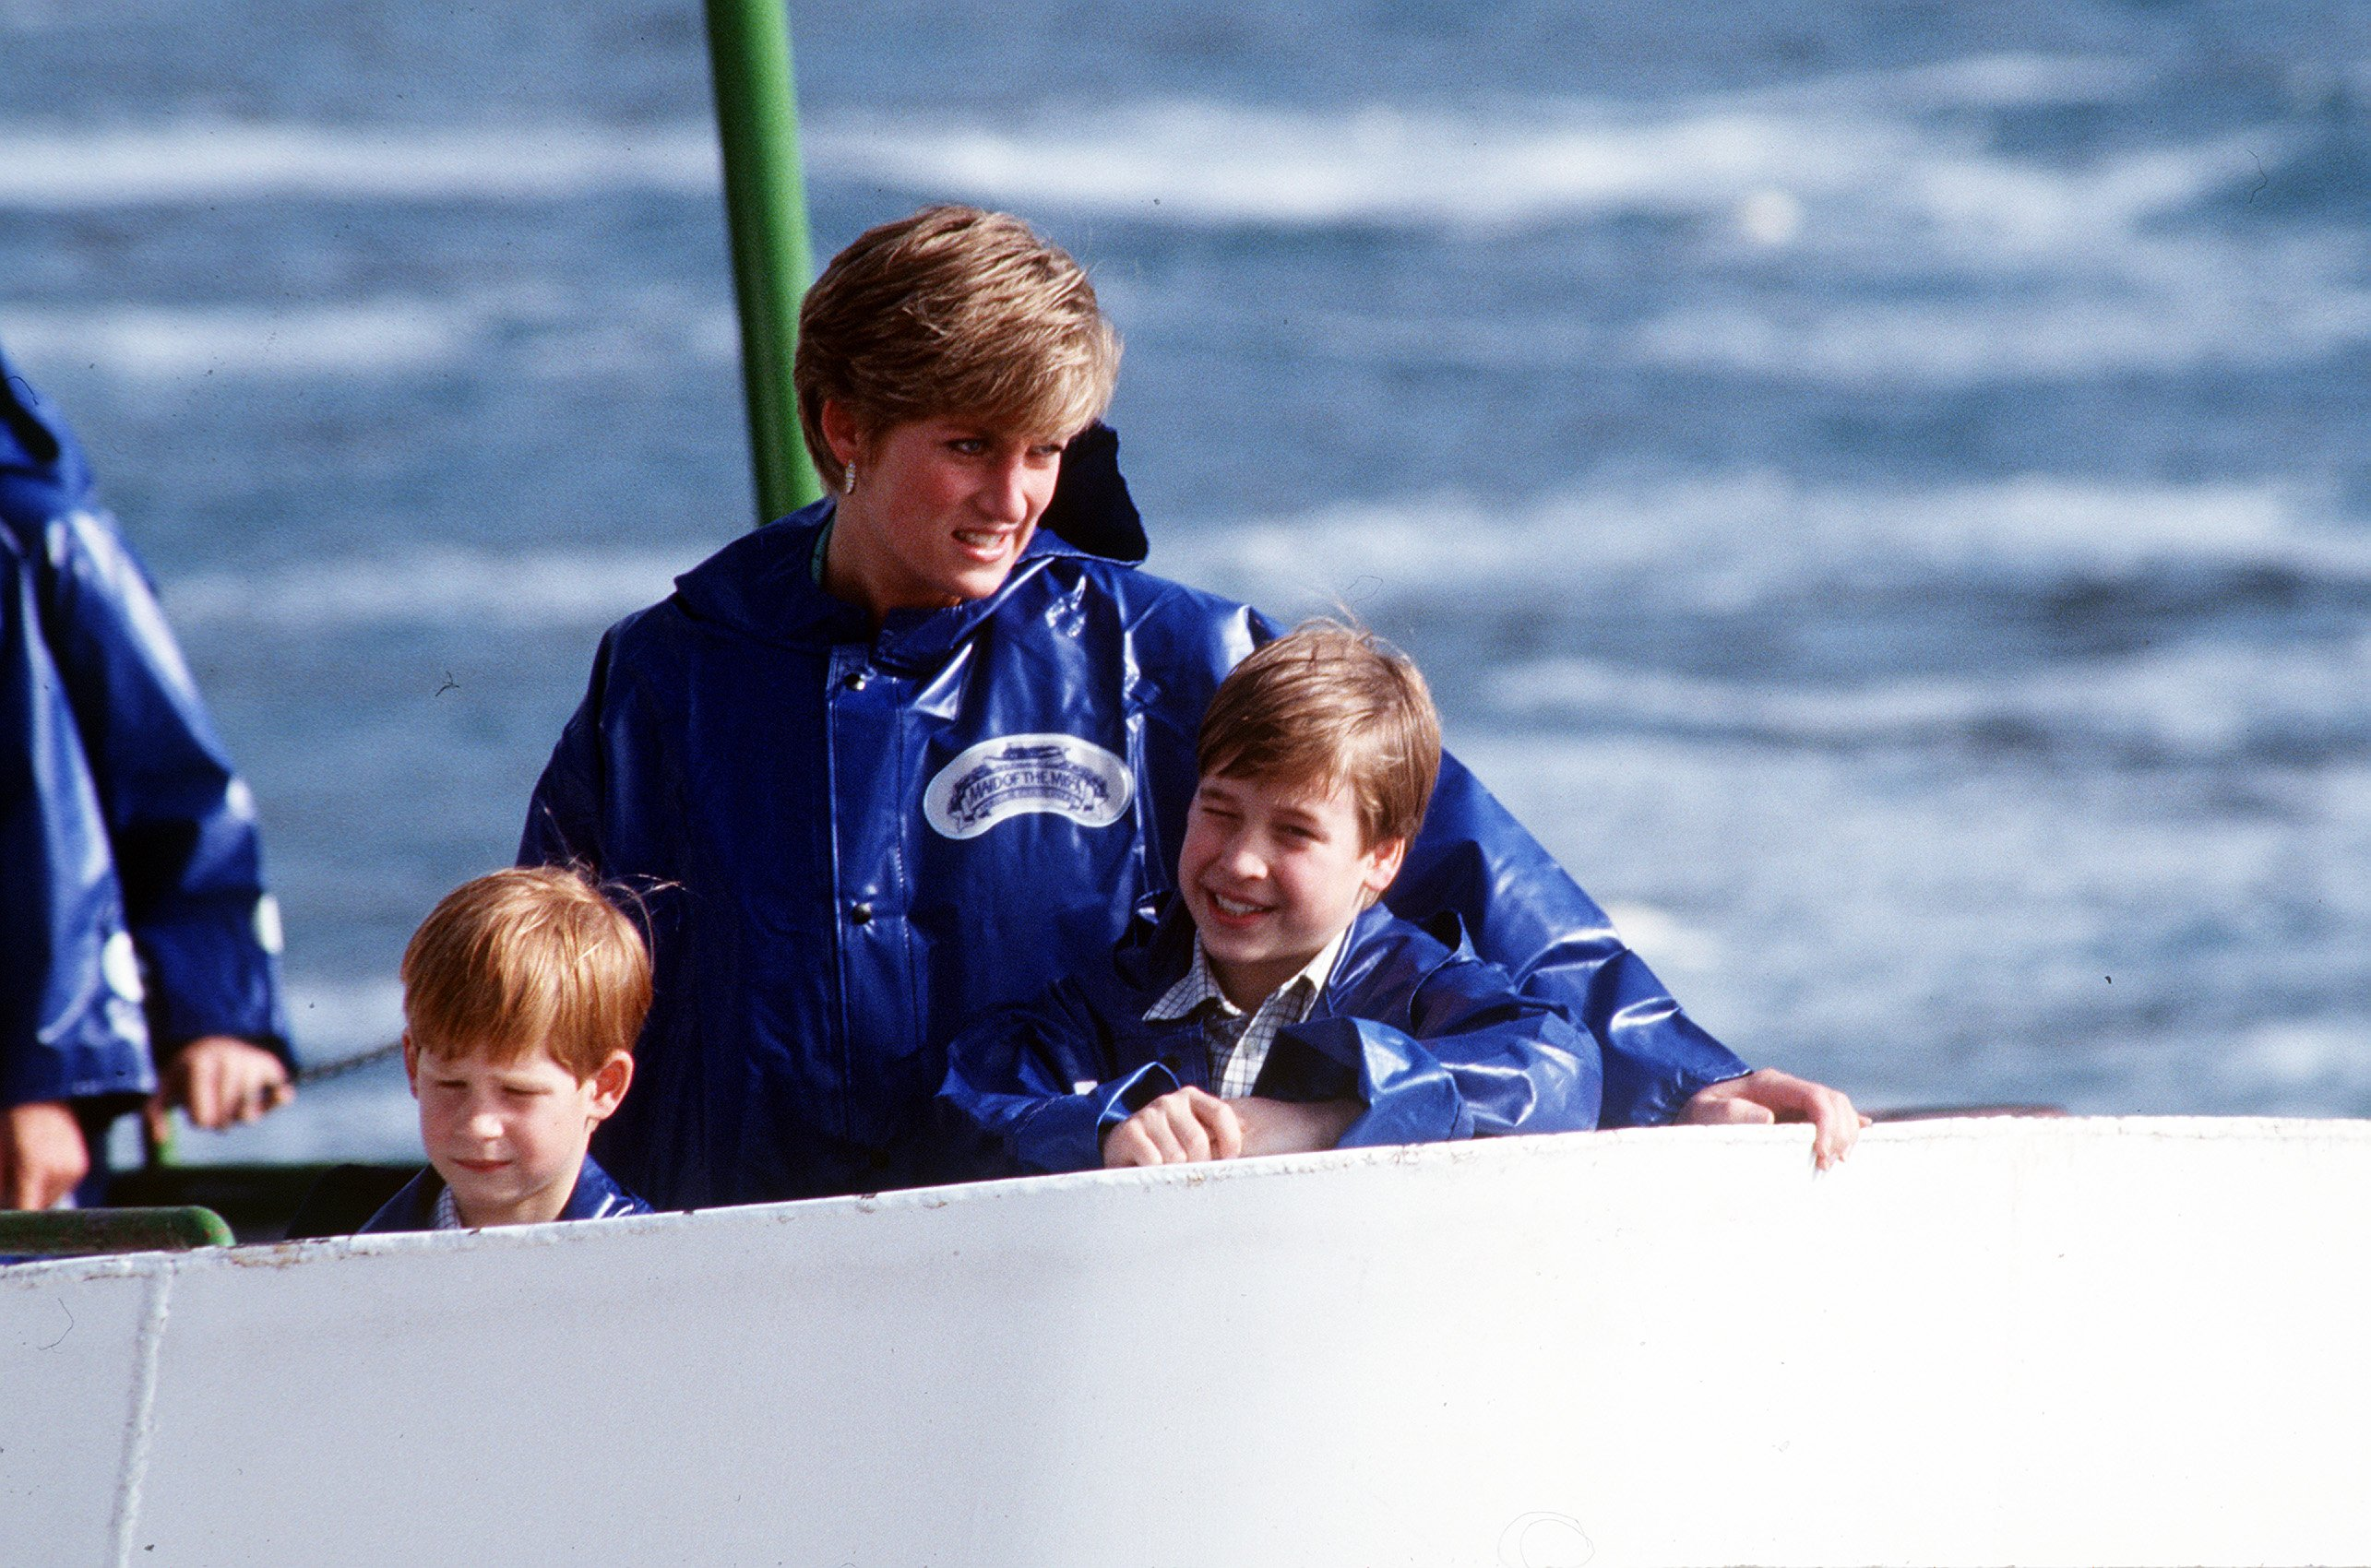 La défunte Princesse Diana avec le Prince Harry et le Prince William naviguant | Photo : Getty Images